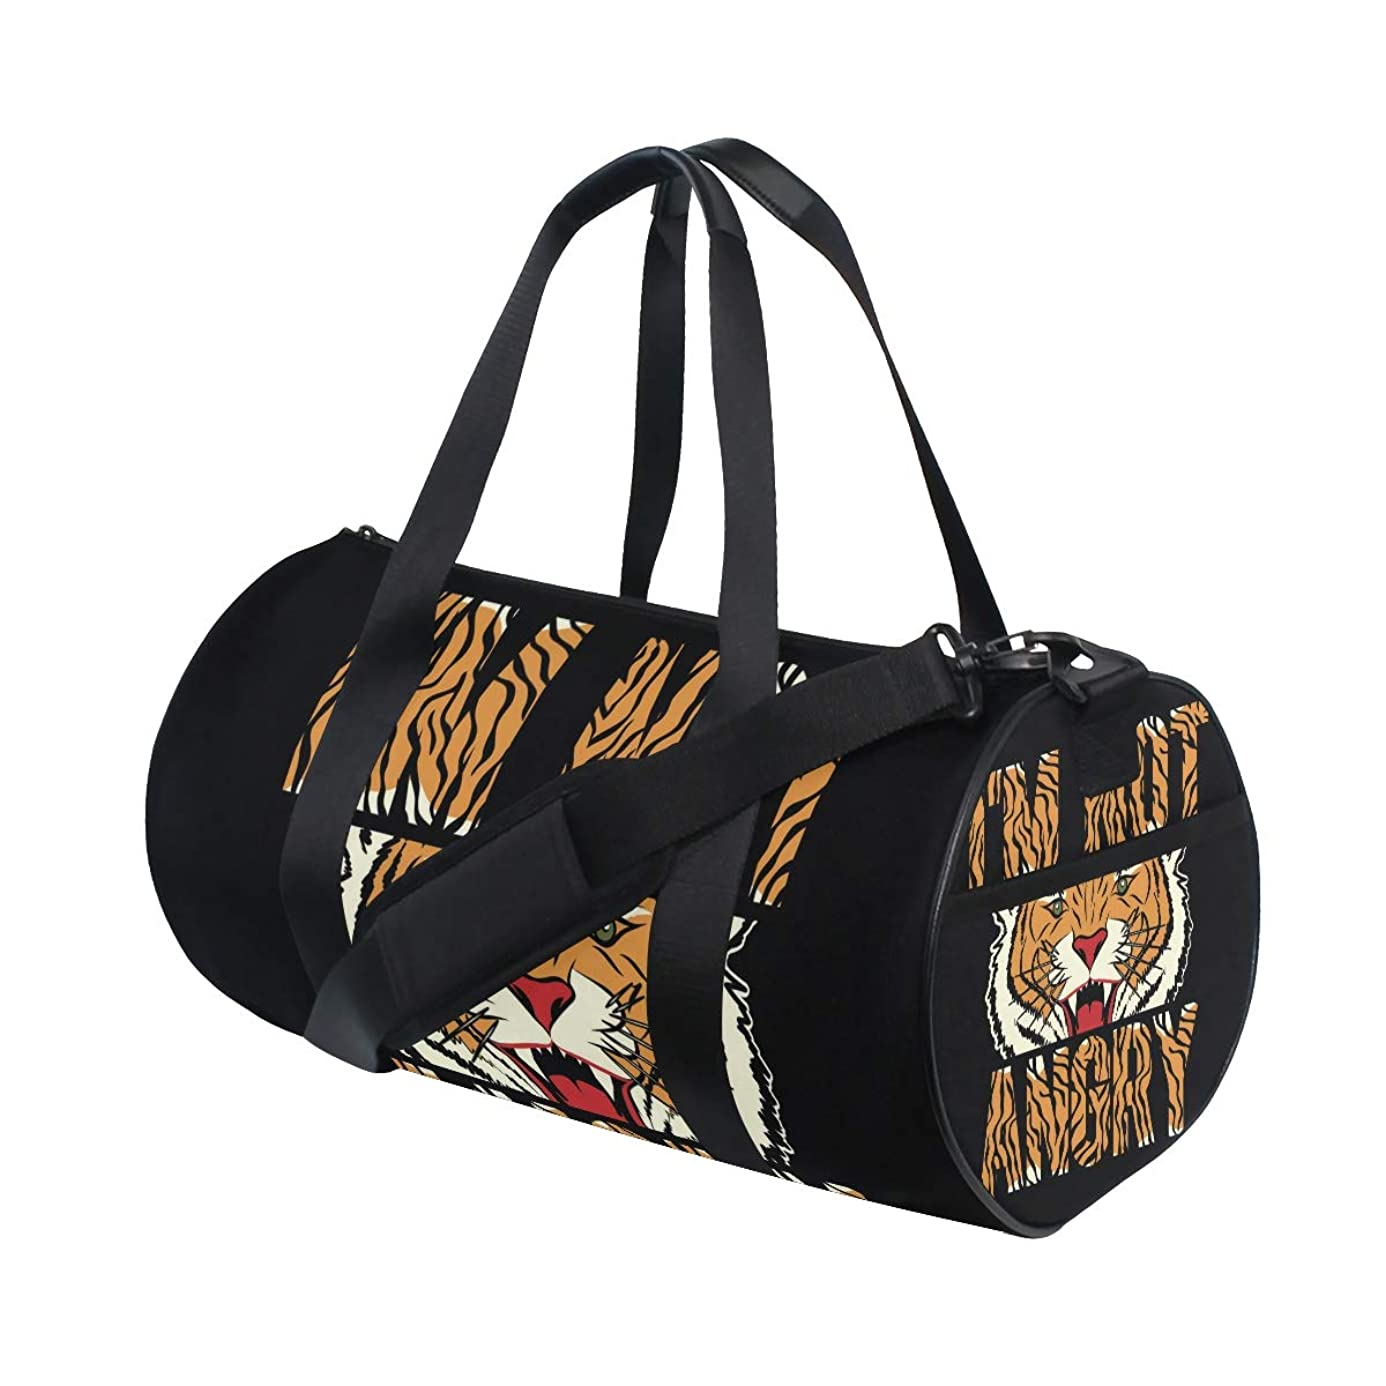 Gym Sports Dance Travel Duffel Bag Japanese Anger Tiger Luggage Bag for Weekender Sports Vacation